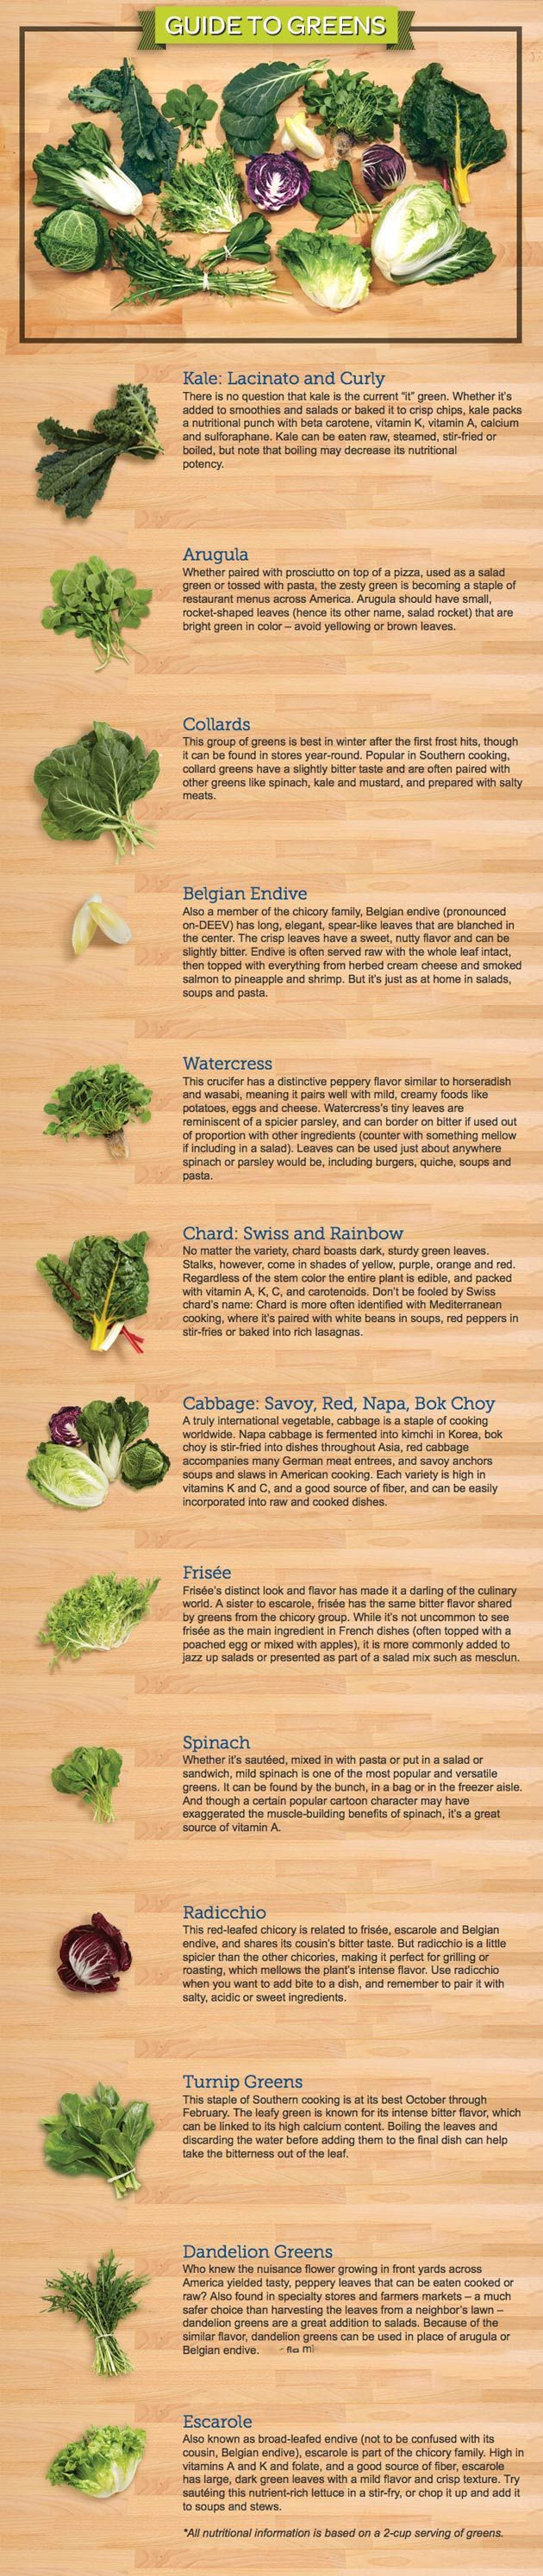 a guide to leafy greens and their benefits u2013 infographic